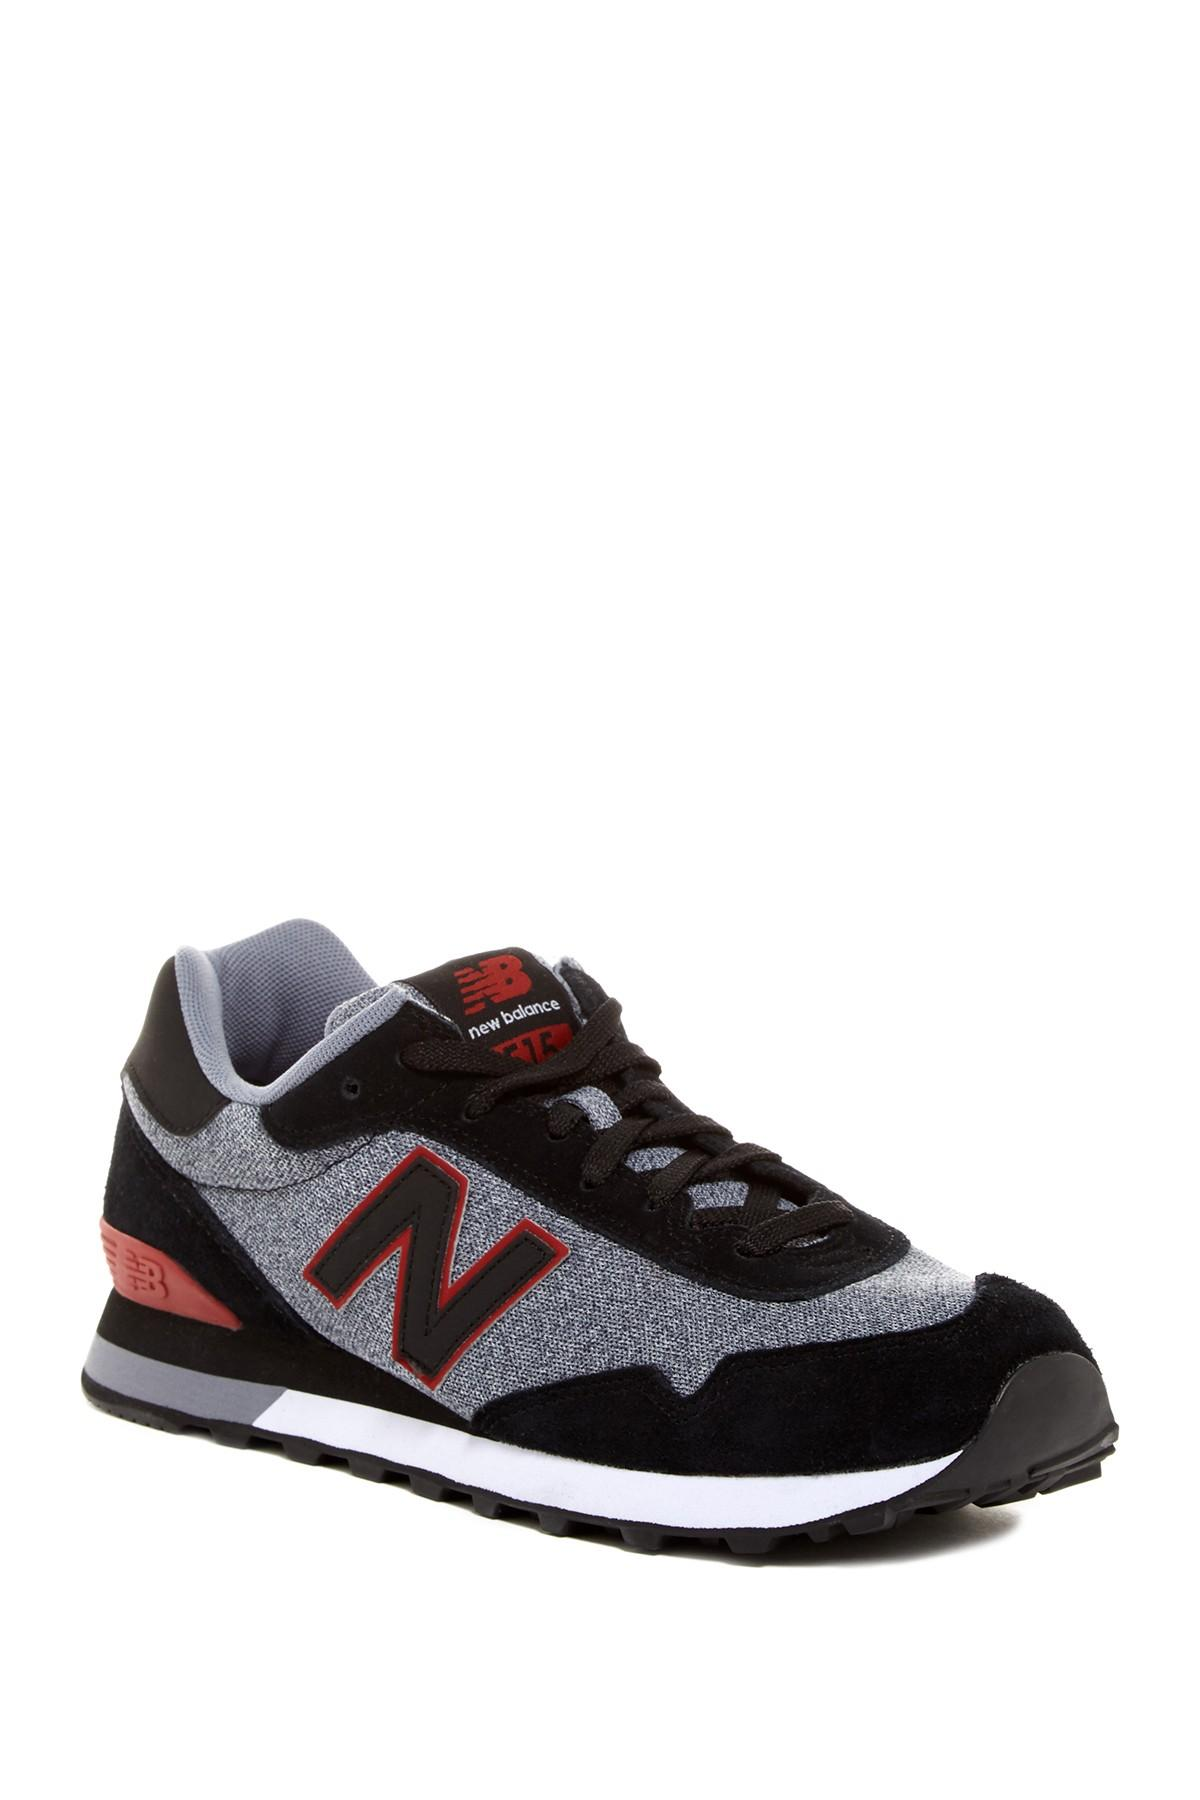 4224e947ab333 ... spain lyst new balance 515 classic sneaker wide width available in  6f586 f6bed